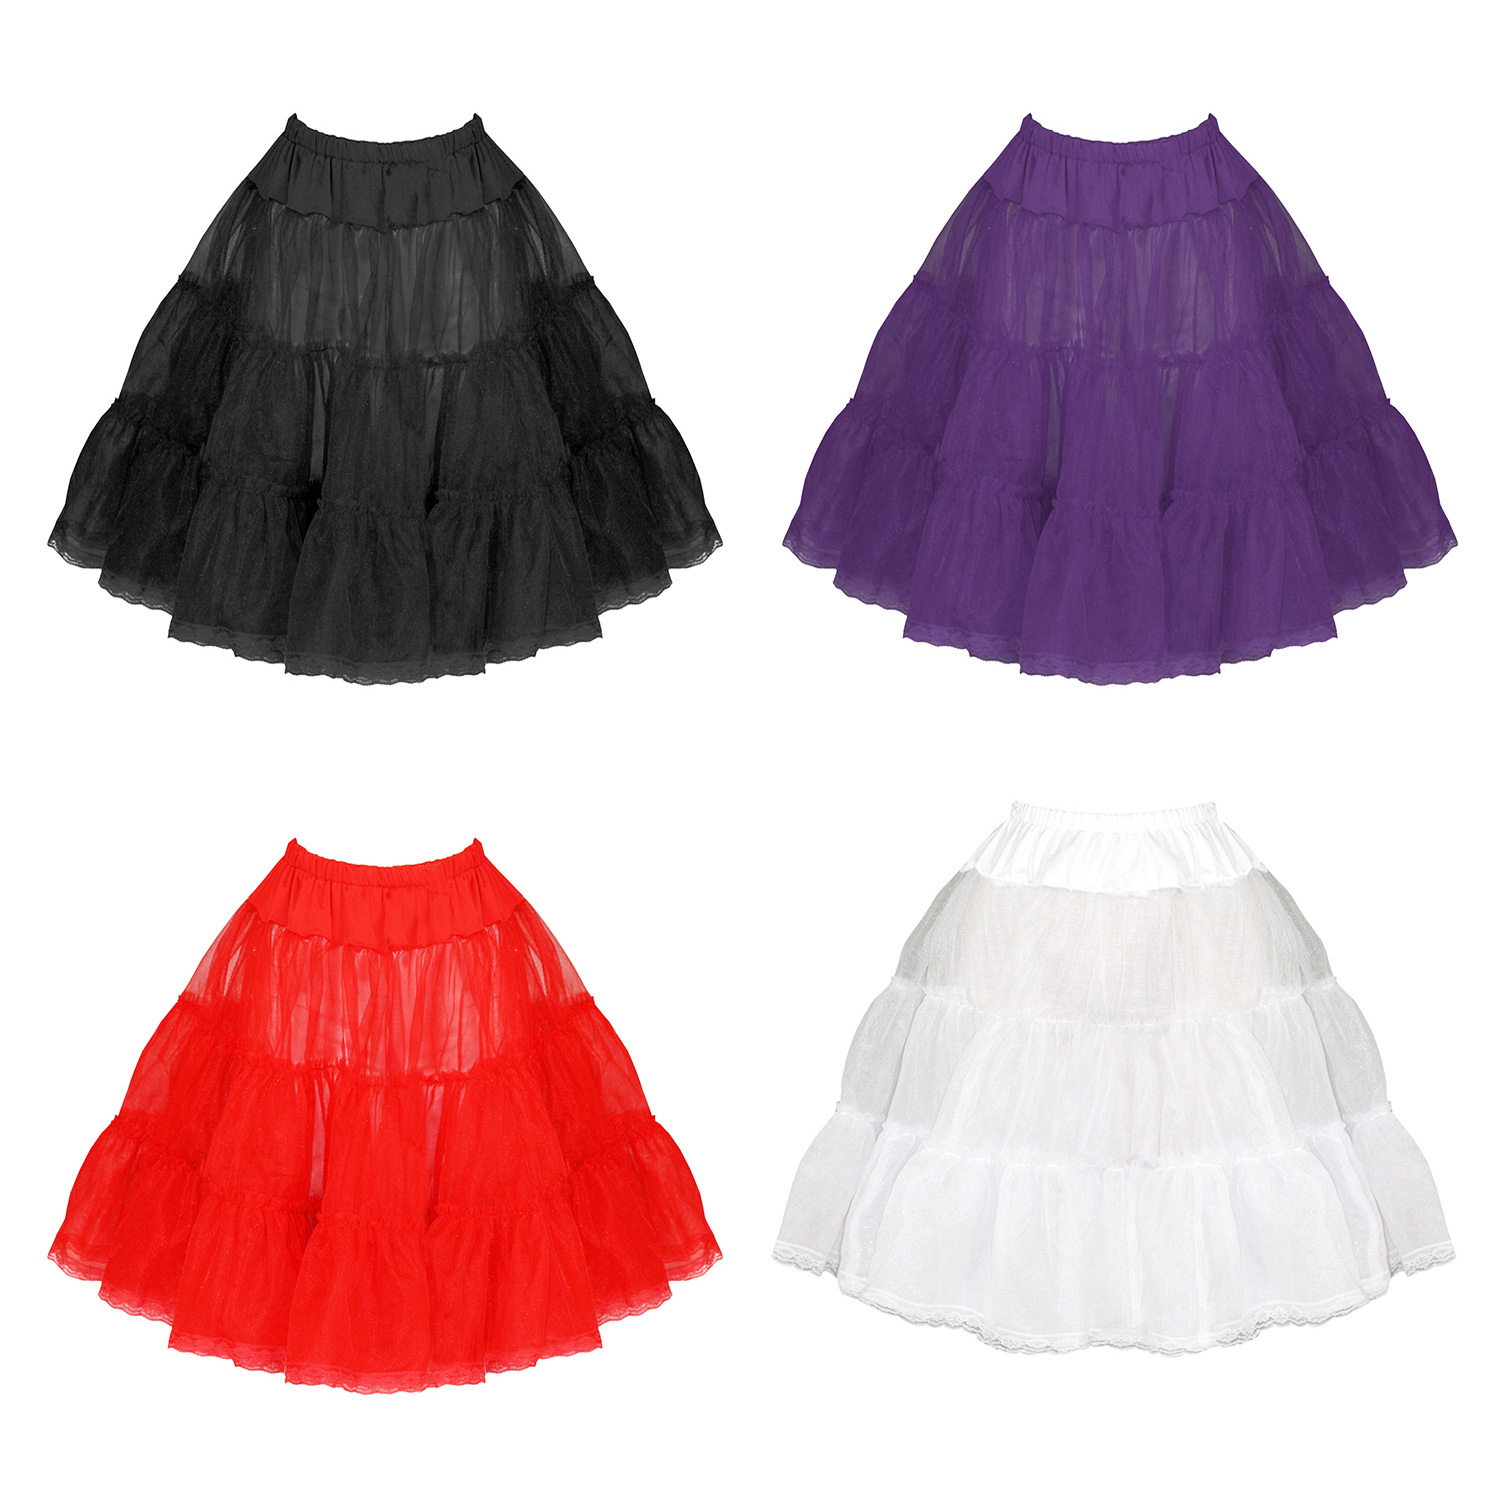 Plus Size Vintage 50s Petticoats | Pinup Petticoats UK | Starlet ...